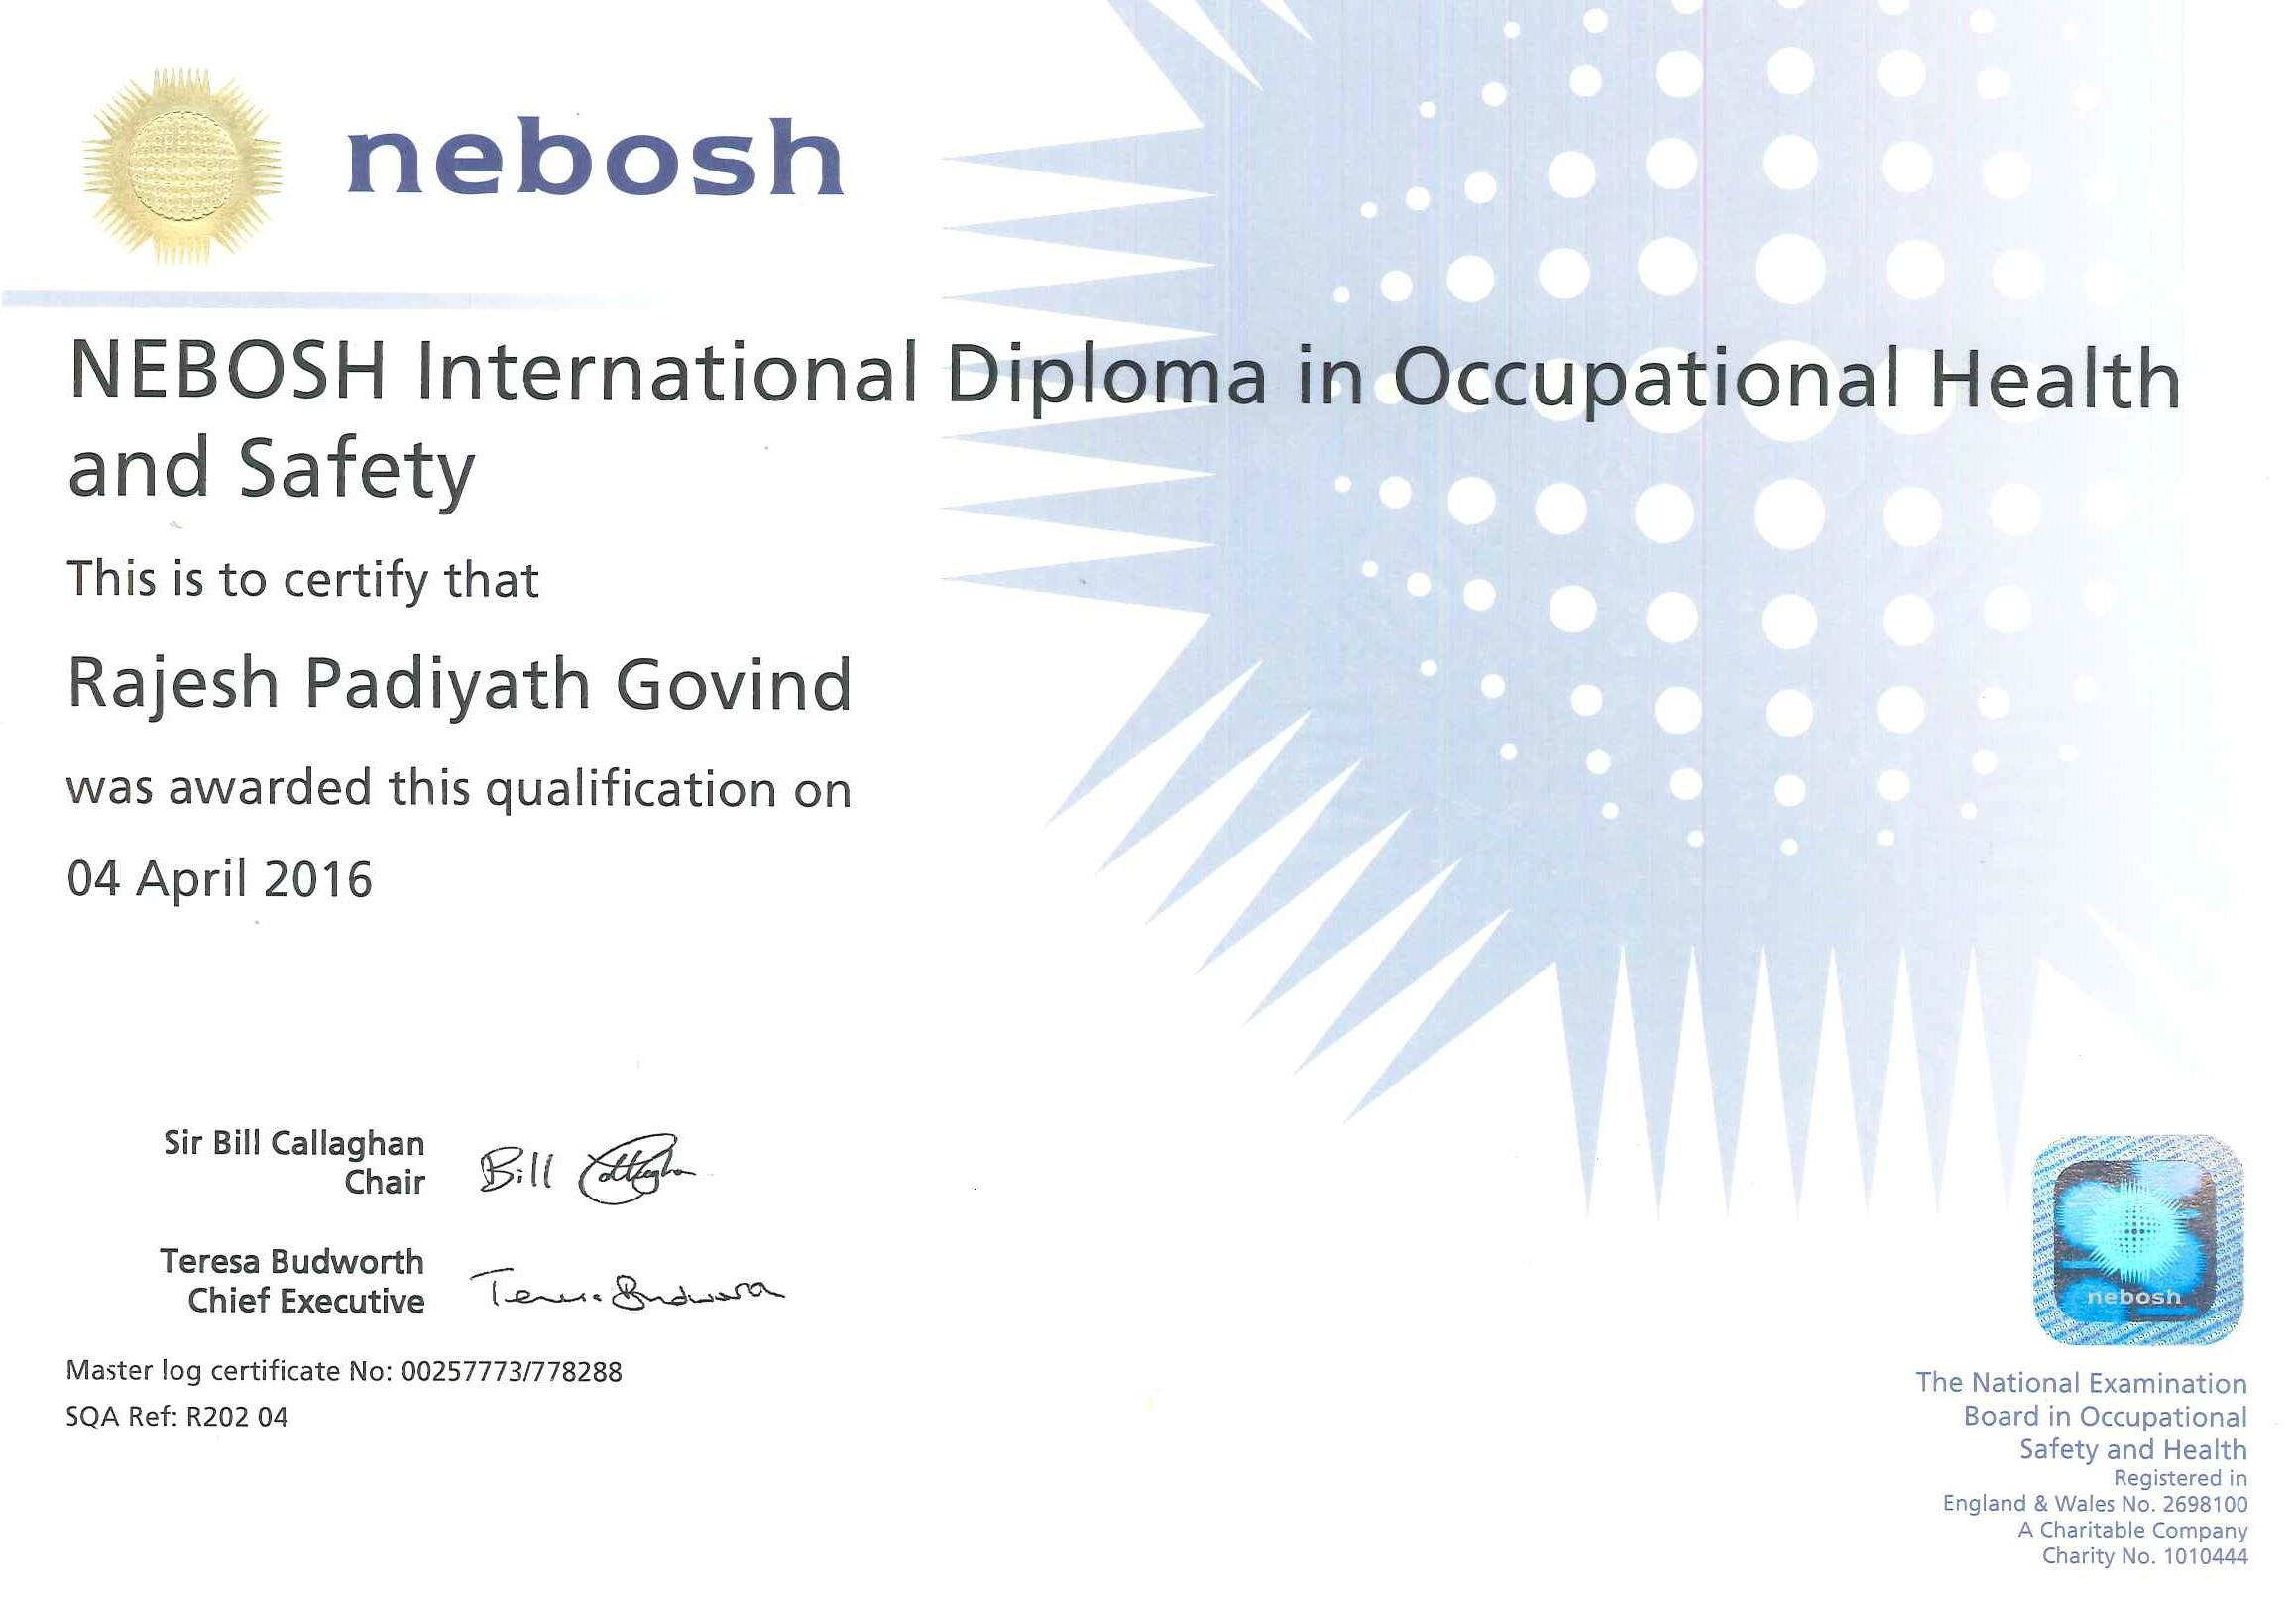 nebosh idip guide Nebosh course in dubai redhat safety training and consulting offers the nebosh igc, scaffolding, lead auditor,nebosh international diploma course in dubai.